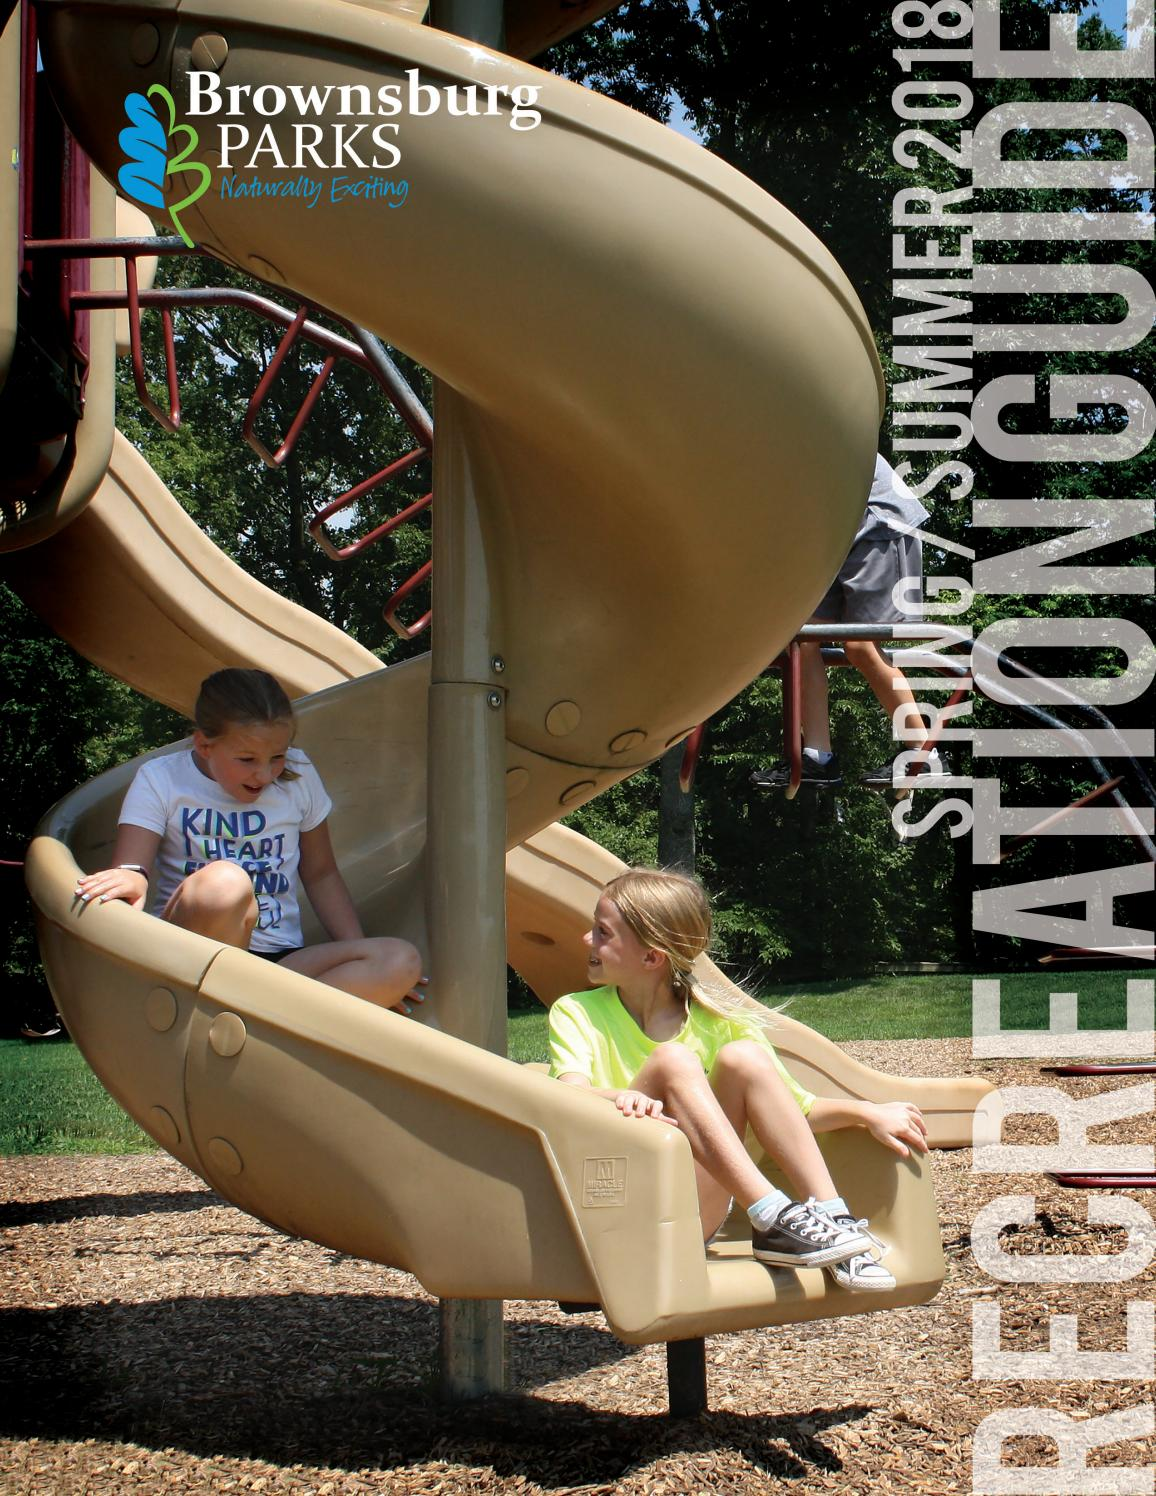 2018 Spring Summer Recreation Guide by Brownsburg Parks - issuu